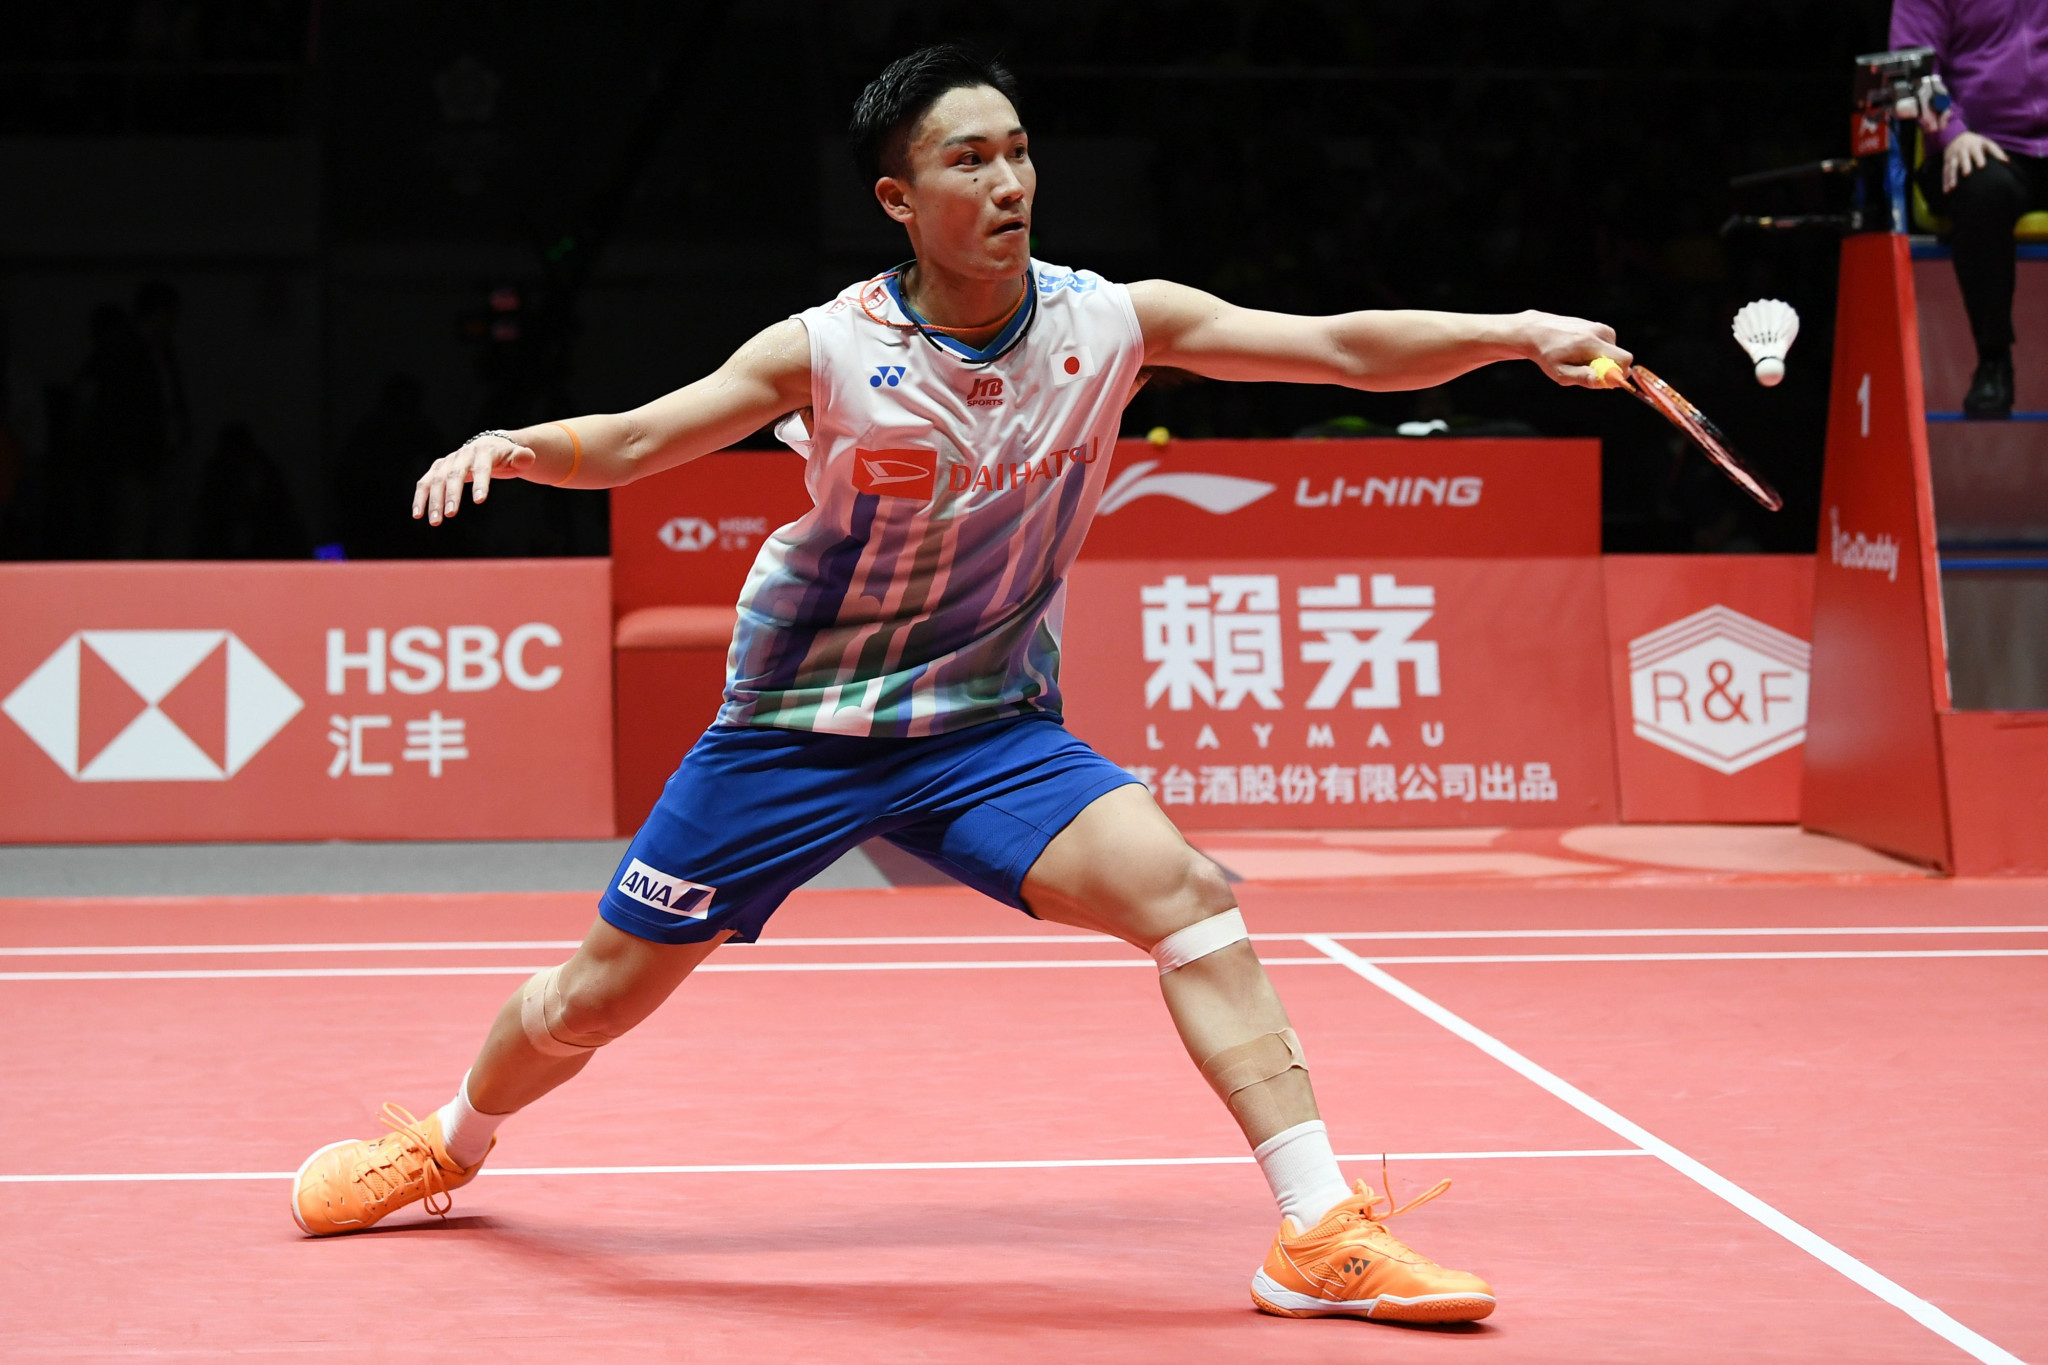 Reigning world champion Kento Momota was among the players to progress to the second round of the men's singles event ©Getty Images